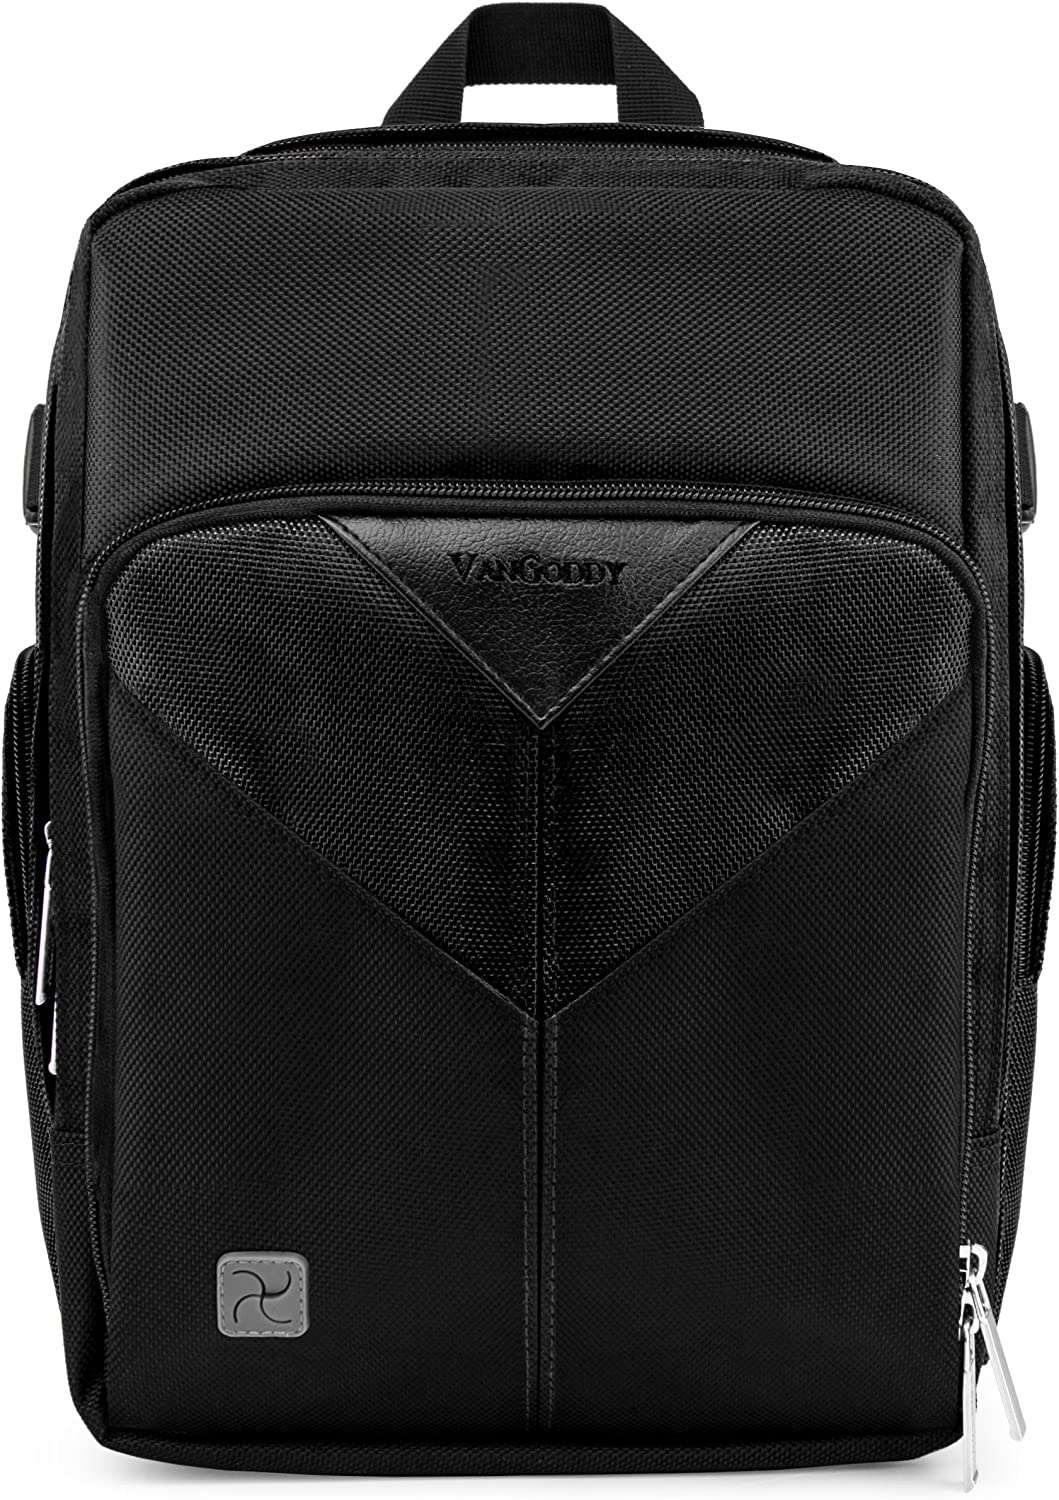 Sparta Travel Nylon Backpack Bag E 620 Digital Advance System Camera and Screen Protector and Mini Tripod E 5 for Olympus E 3 Jet Black E 30